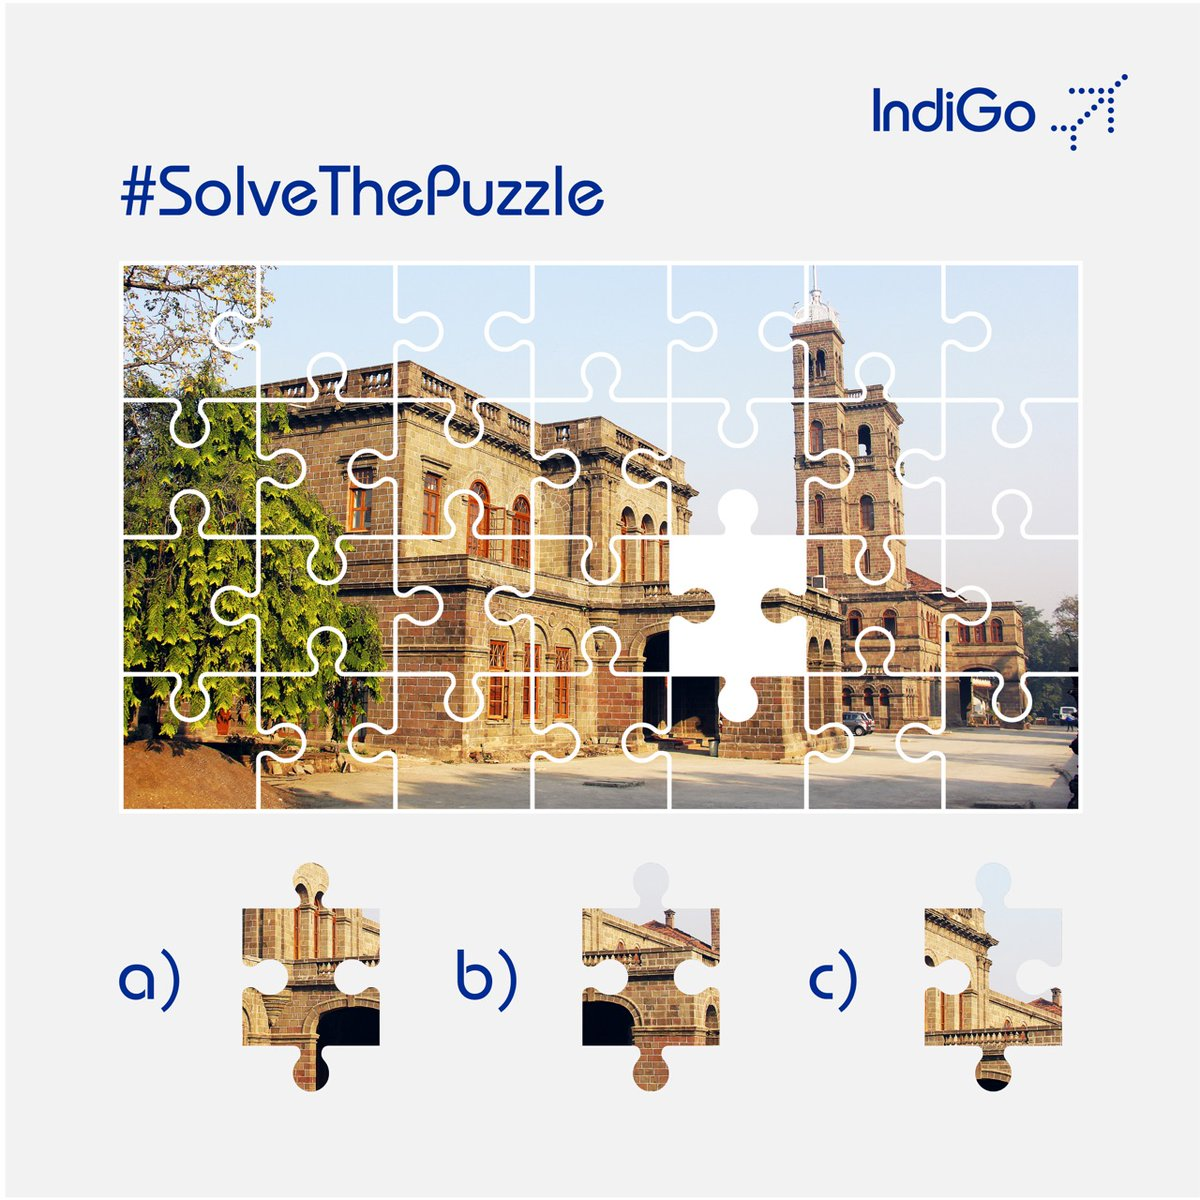 Calling all puzzle enthusiasts on board! Guess which missing piece completes this rustic yet elegant capture. #solvethepuzzle #puzzle #letsindigo #aviation https://t.co/YsluXAqq2a